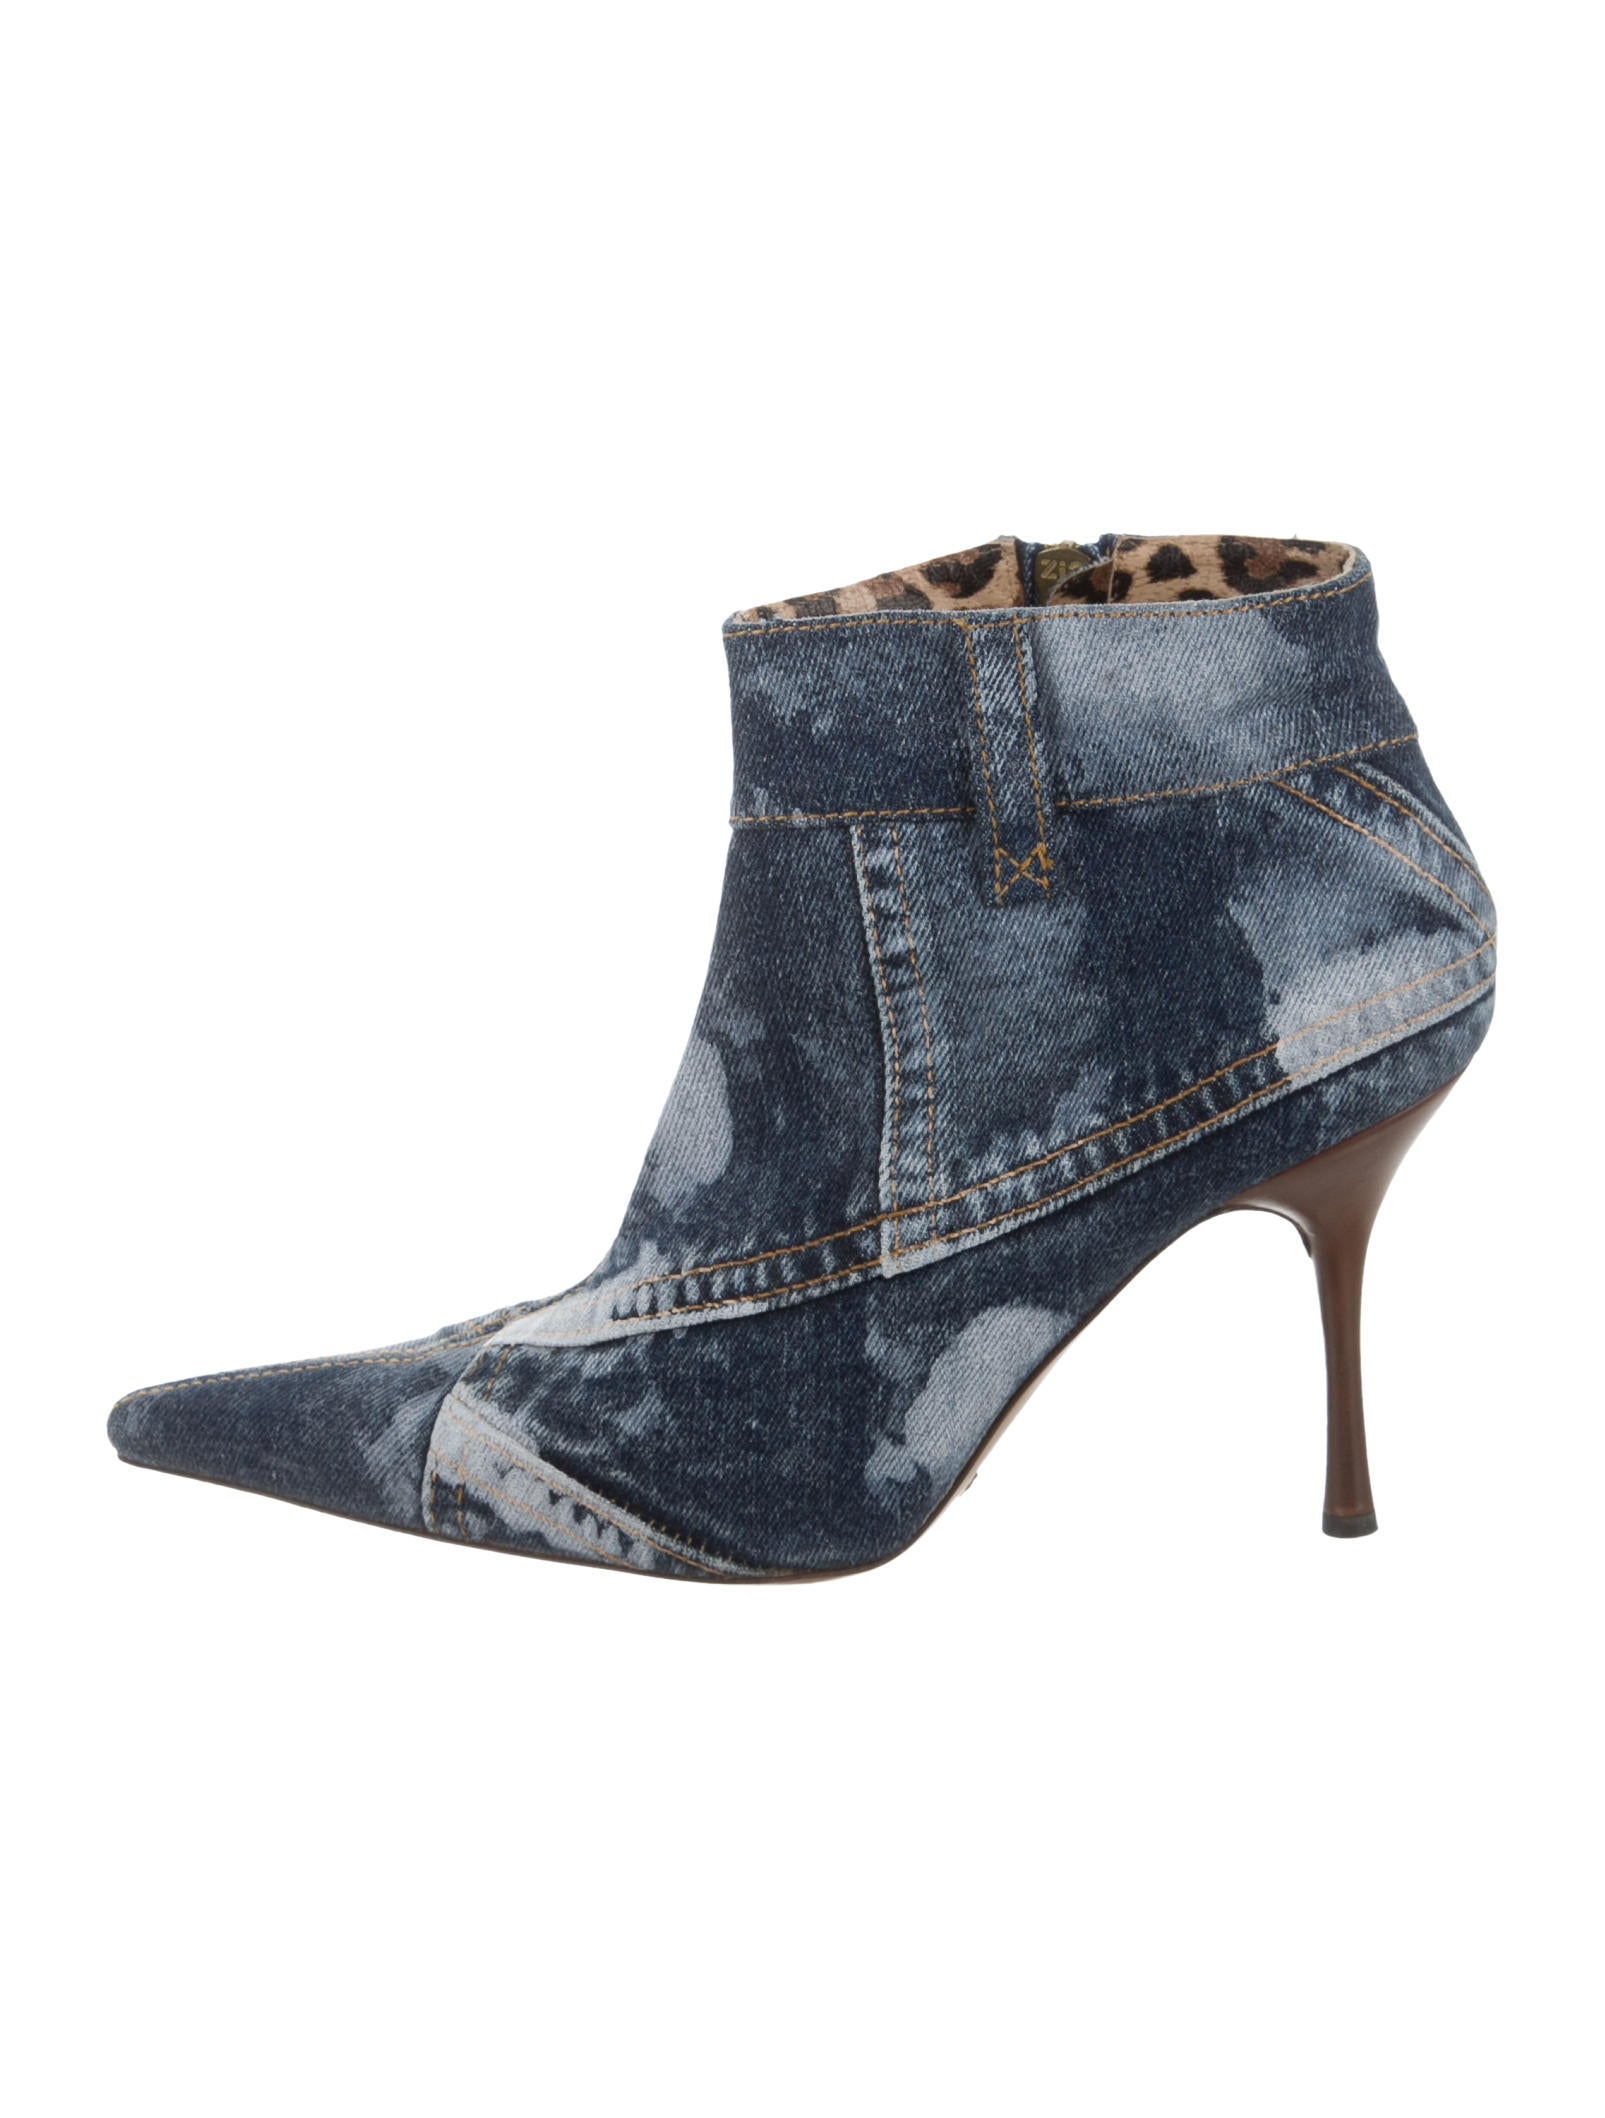 dolce gabbana pointed toe denim ankle boots shoes